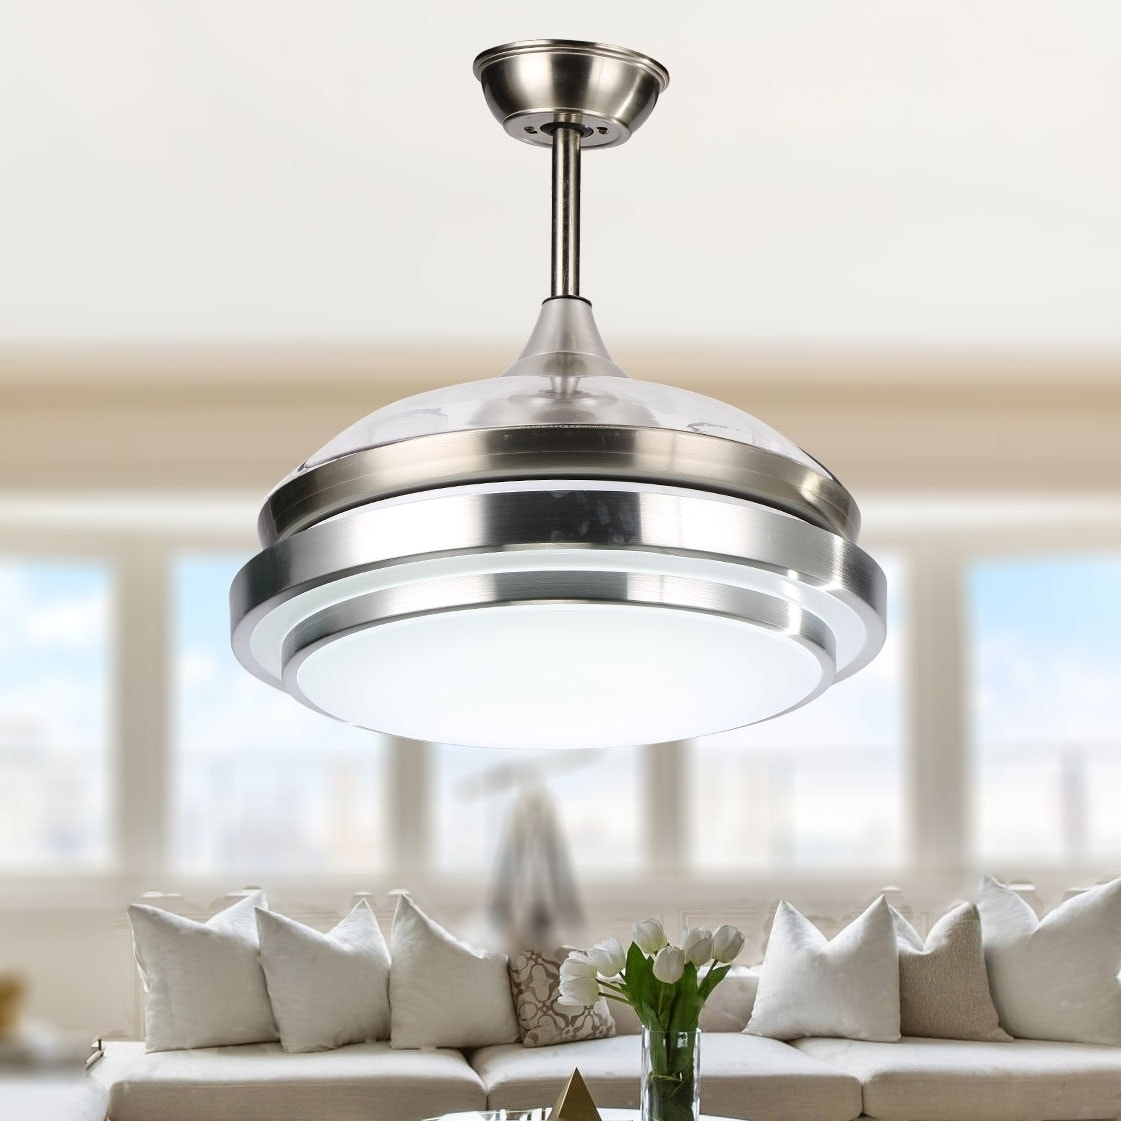 Lxn 22 Modern Chandelier Ceiling Fan For Living Room Bedroom With Led Light Kit And Remote Control Invisible Ceiling Fan Light Three Color Dimmable Eventerservice Com